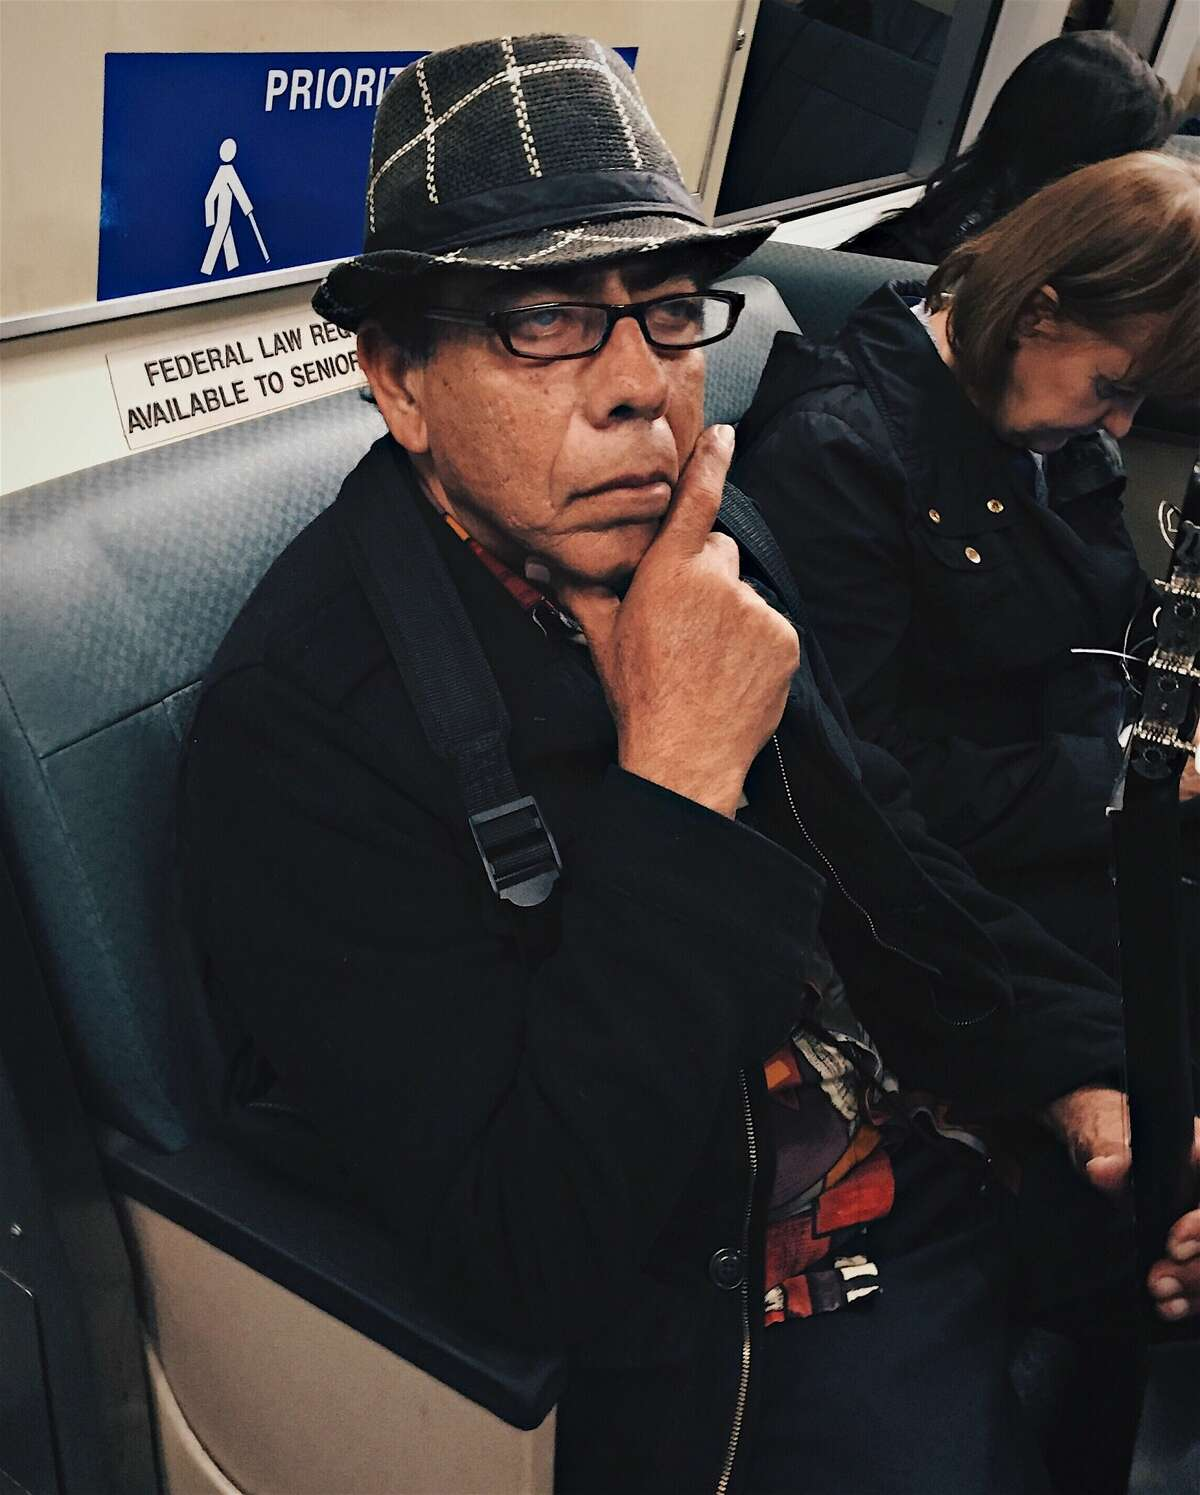 Jay Dea started his @commutelife Instagram page documenting his daily BART and Muni commute to and from his corporate job in San Francisco. It has since evolved to encompass street life in San Francisco as well.